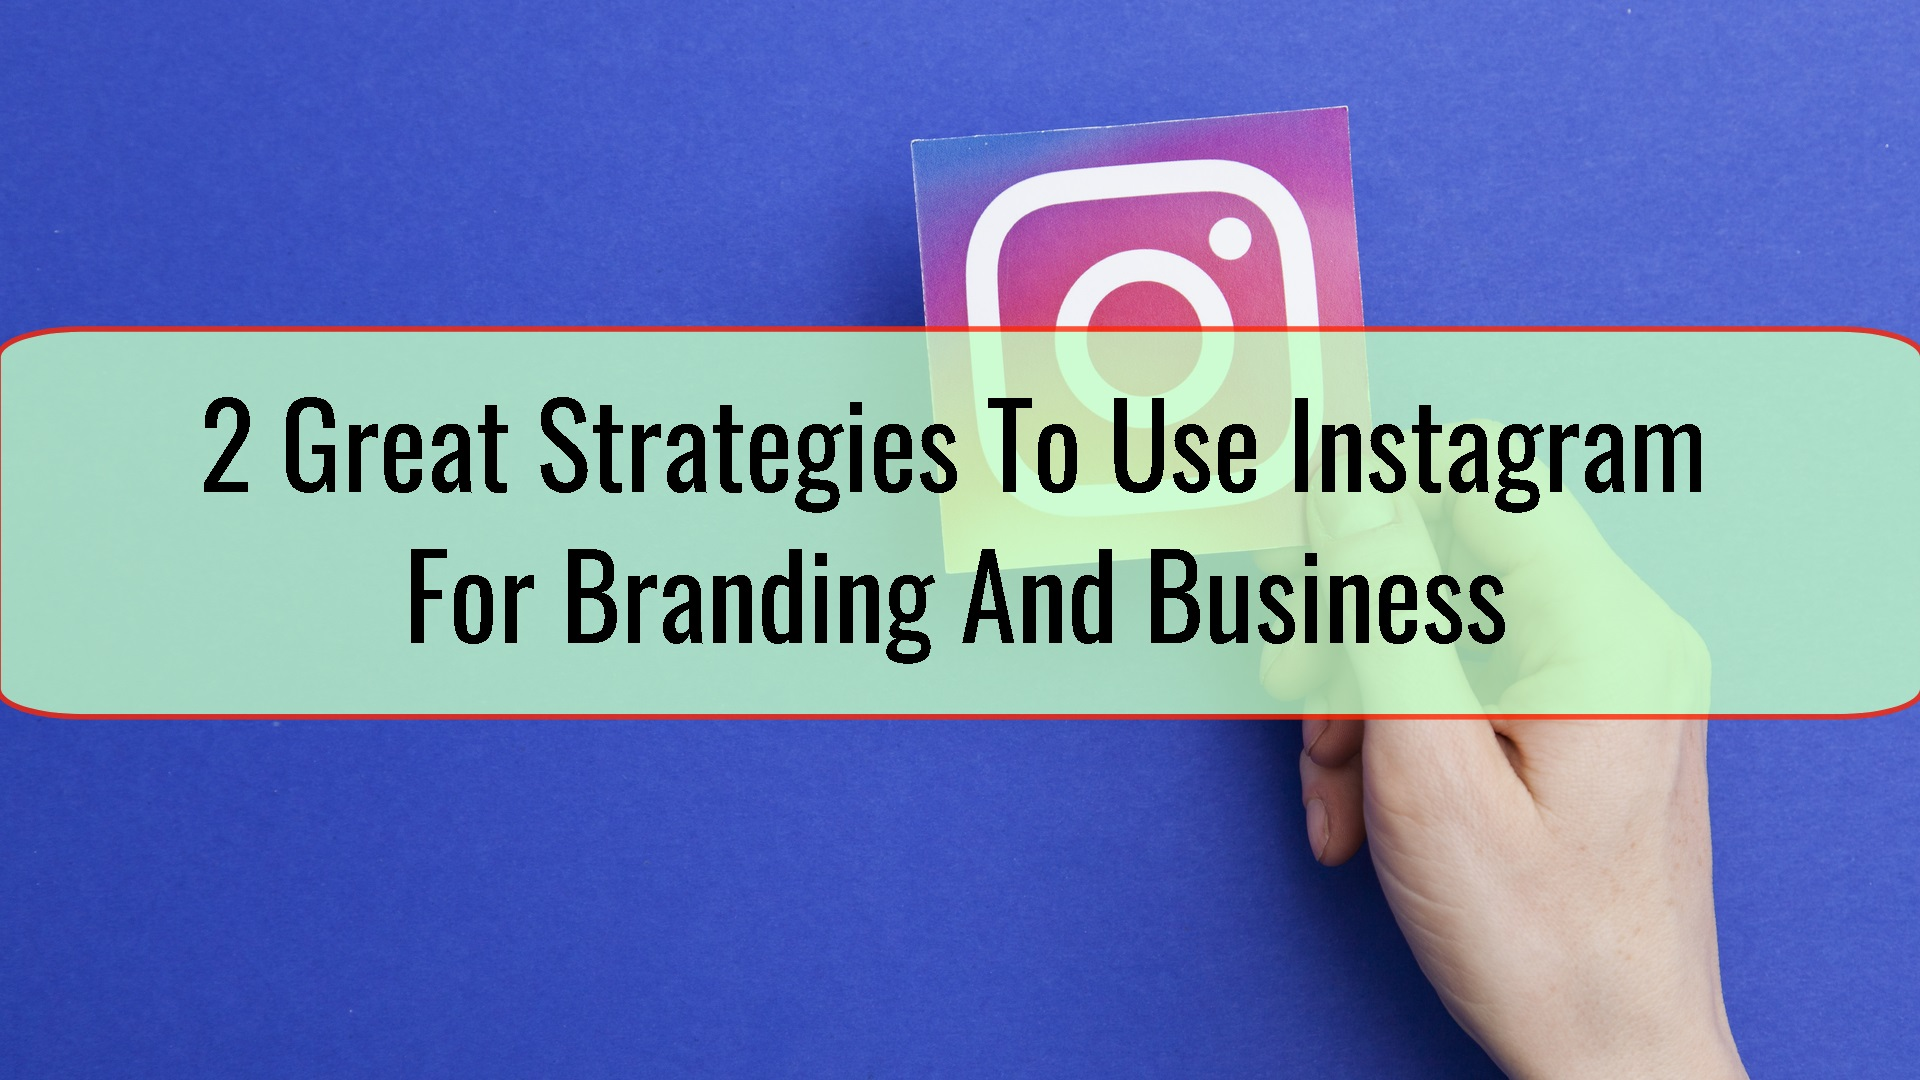 2 Great Strategies To Use Instagram For Branding And Business